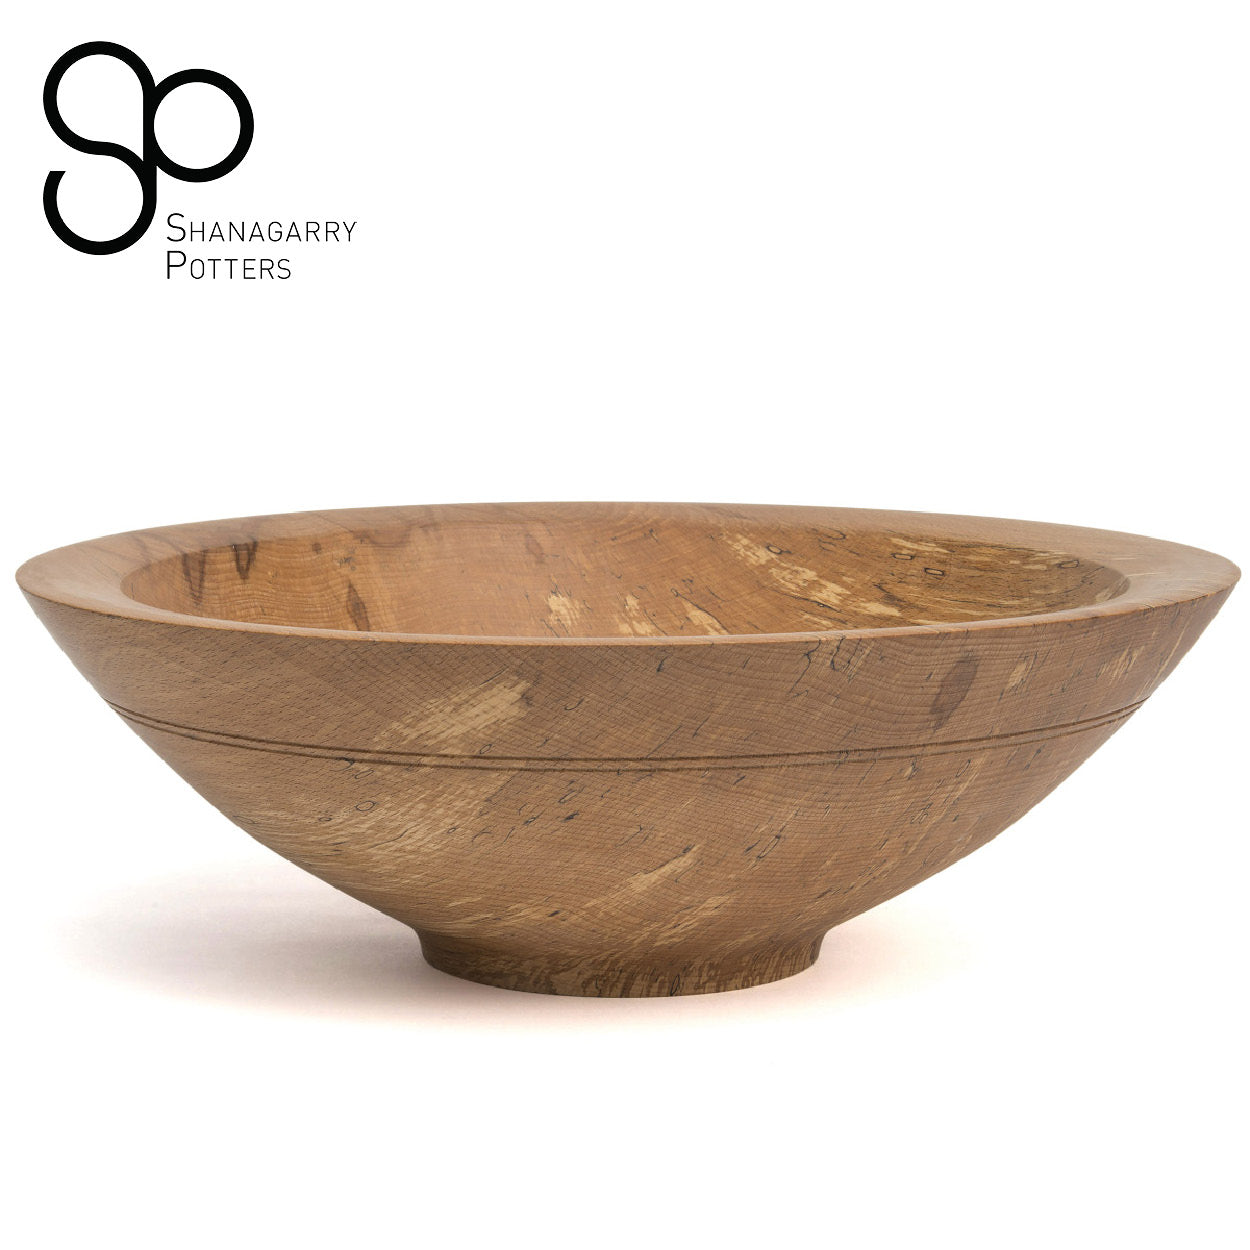 Liam O'Neill - XXLarge Flared Bowl